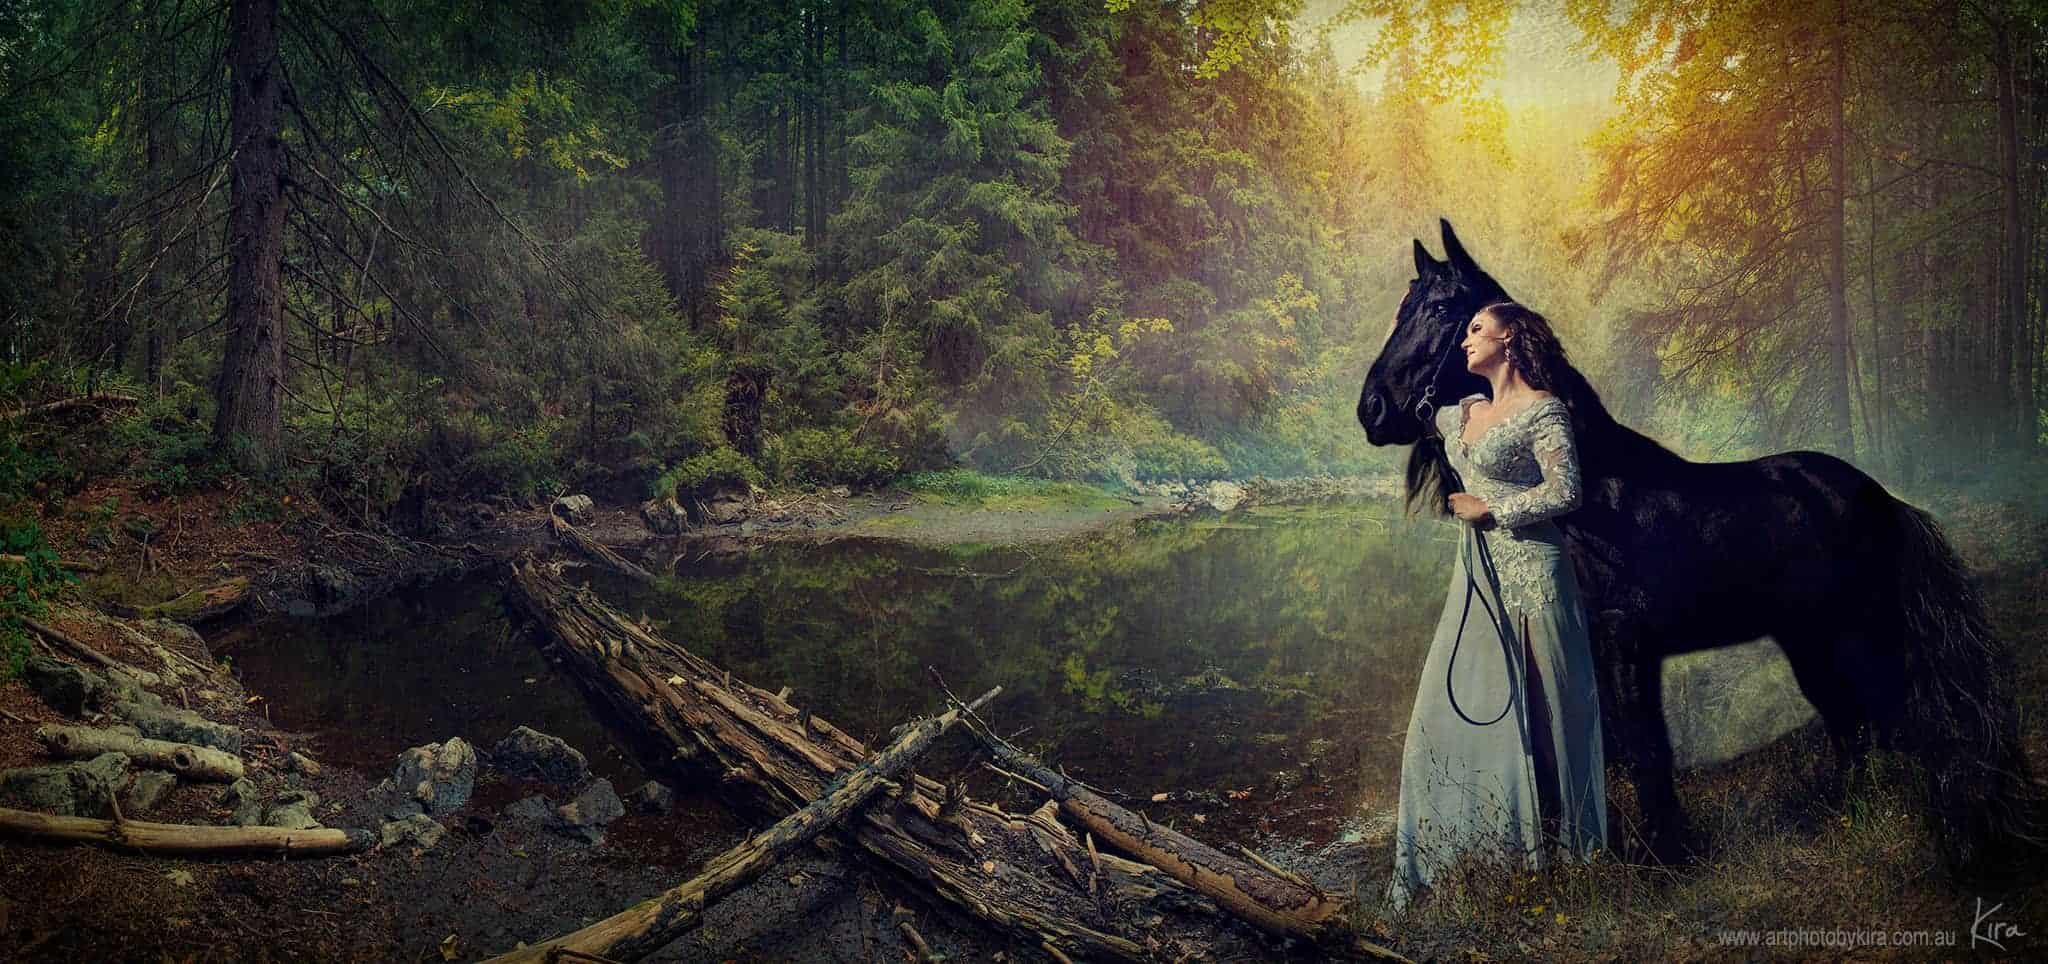 fantasy portrait photography Sydney fine art